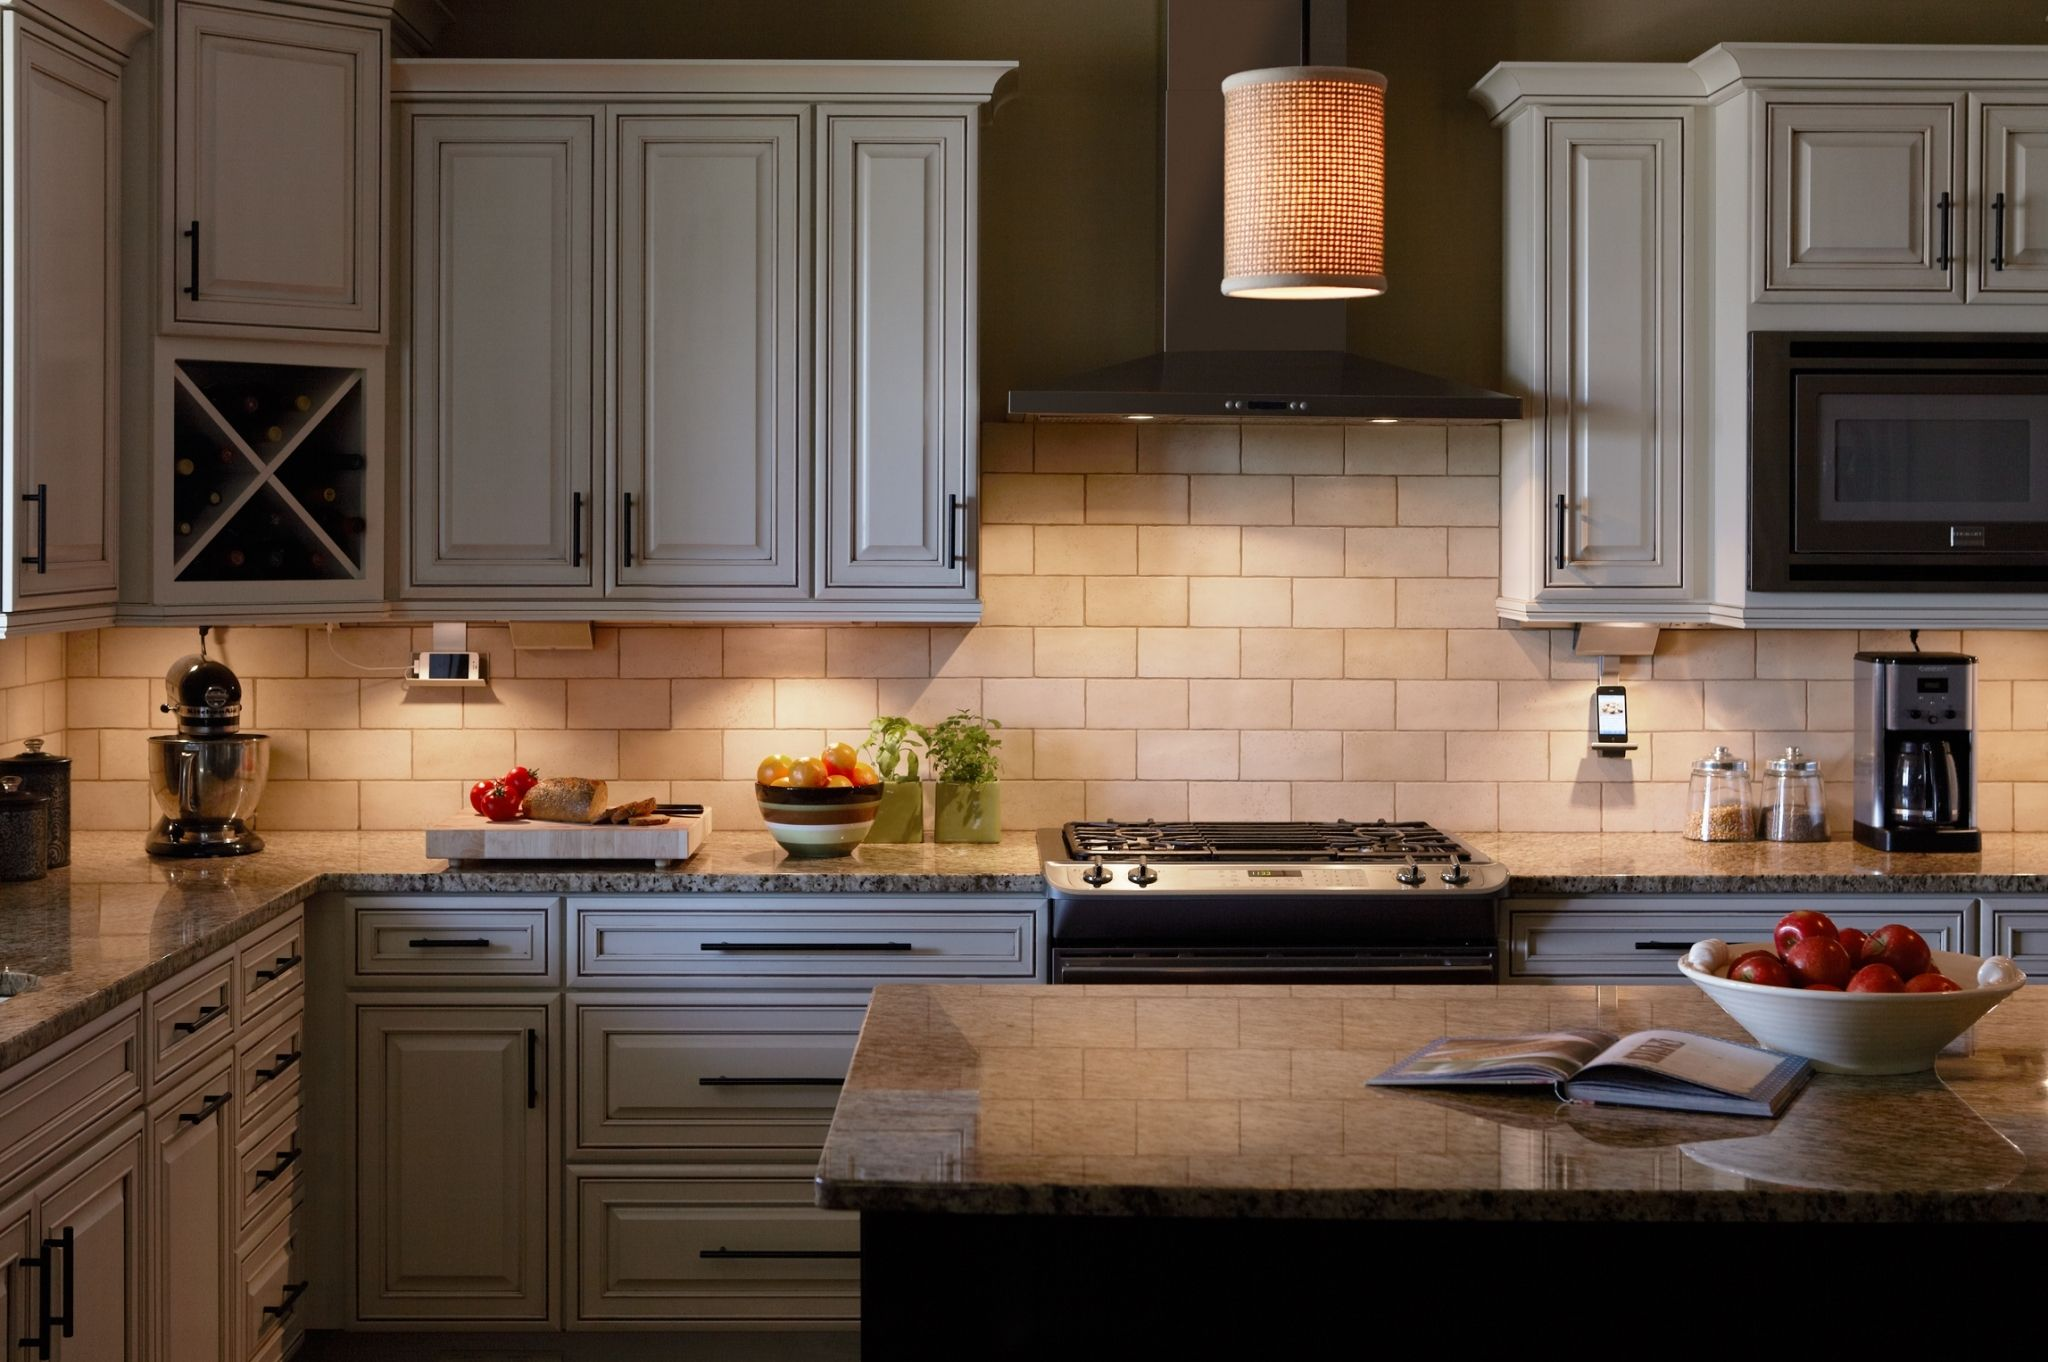 counter lighting http. Counter Lighting Http. LEDs Lead In Kitchen Trends With Task And Under Cabinet Rounding Http